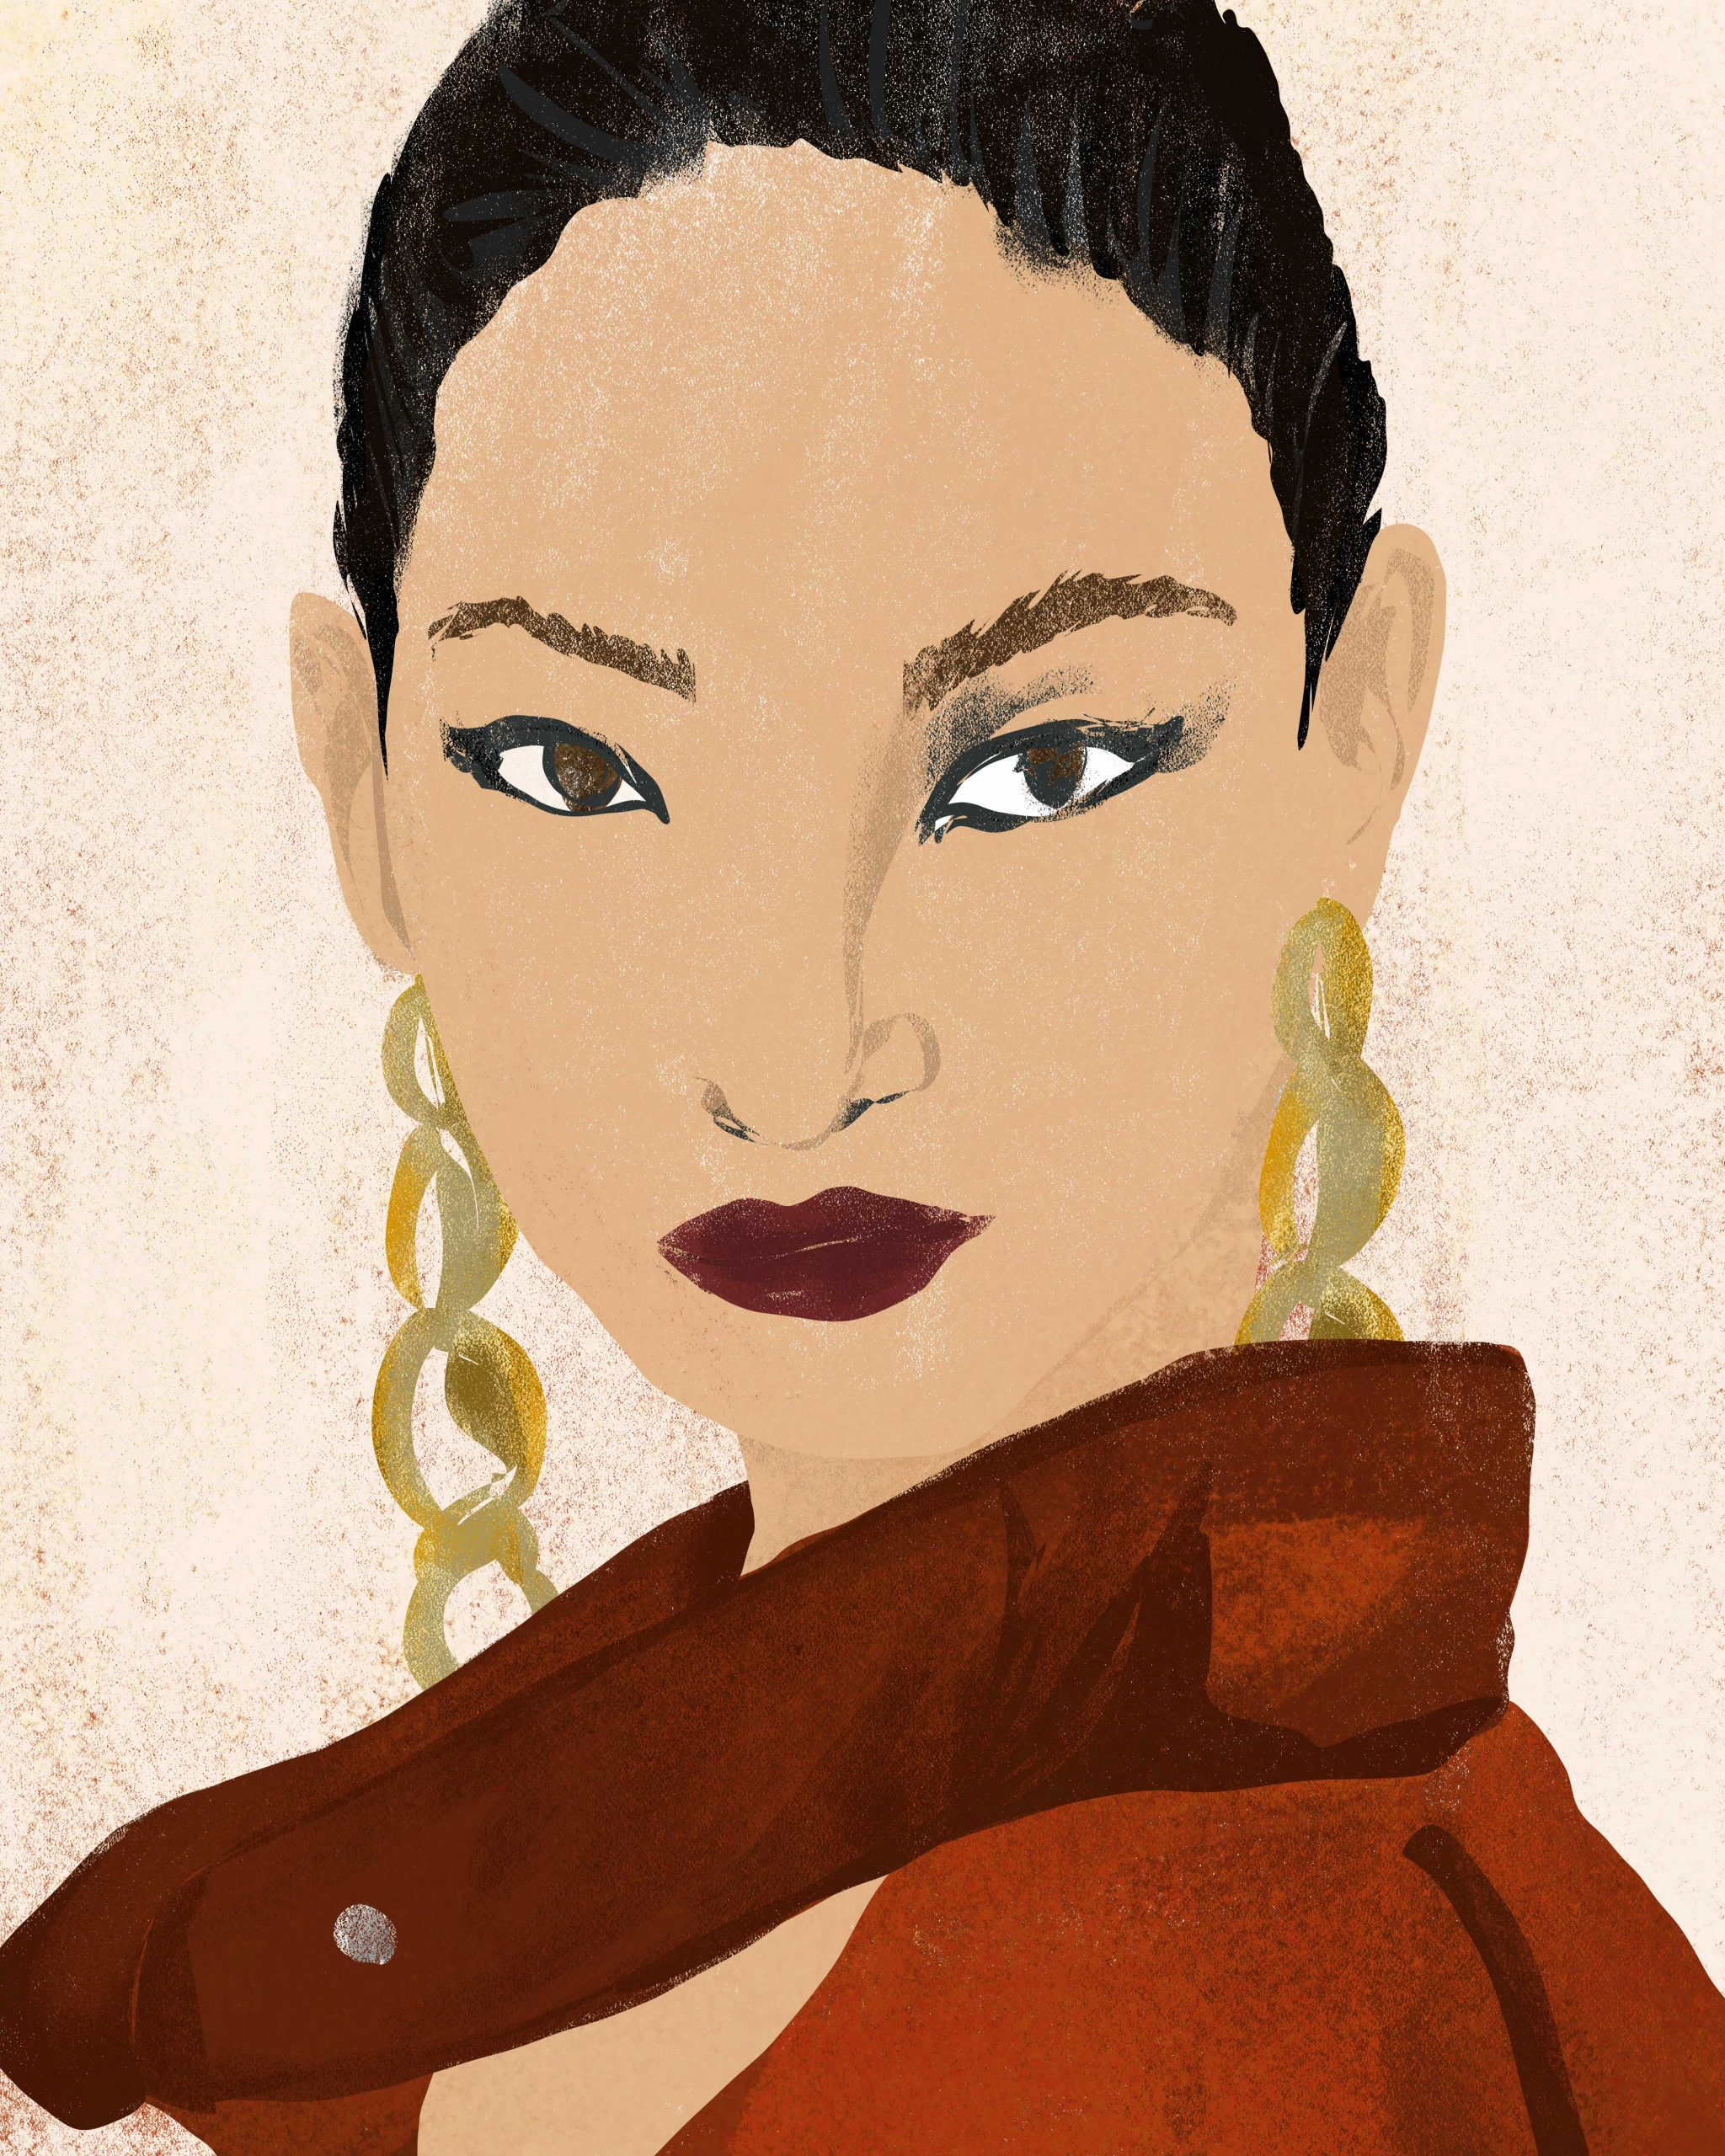 fashion editorial illustration of woman backstage at fashion week illustrator megan st clair